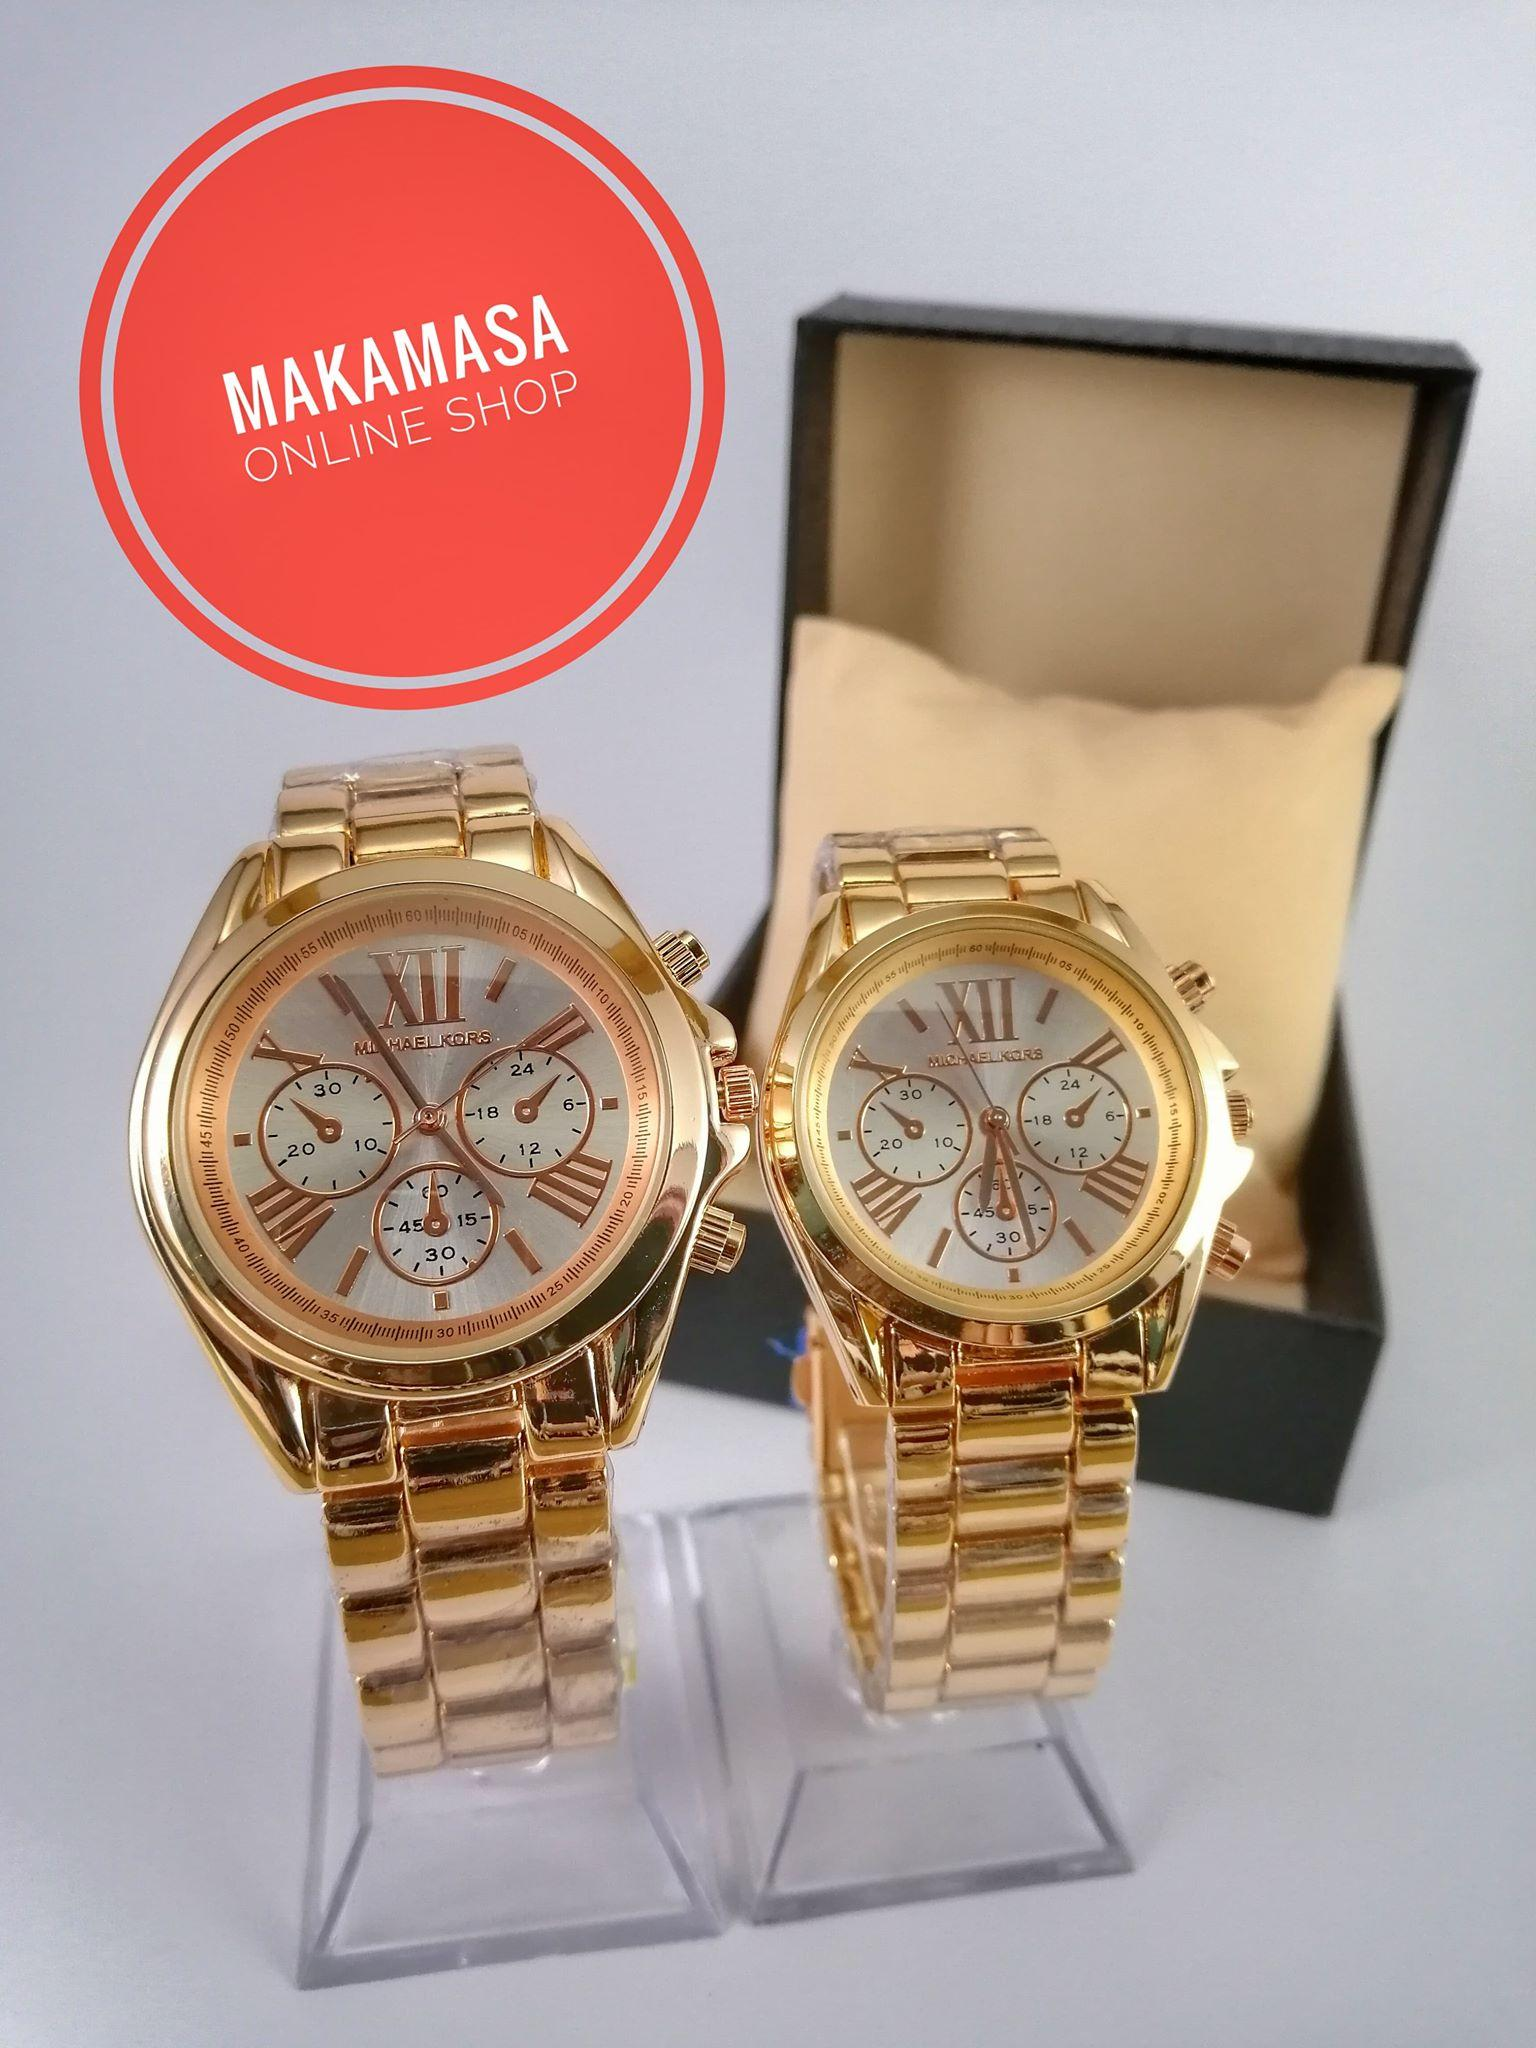 75ab270bd5ae Fashionable Couple s Watch - Michael Kors Bradshaw Stainless Steel Watch  Strap